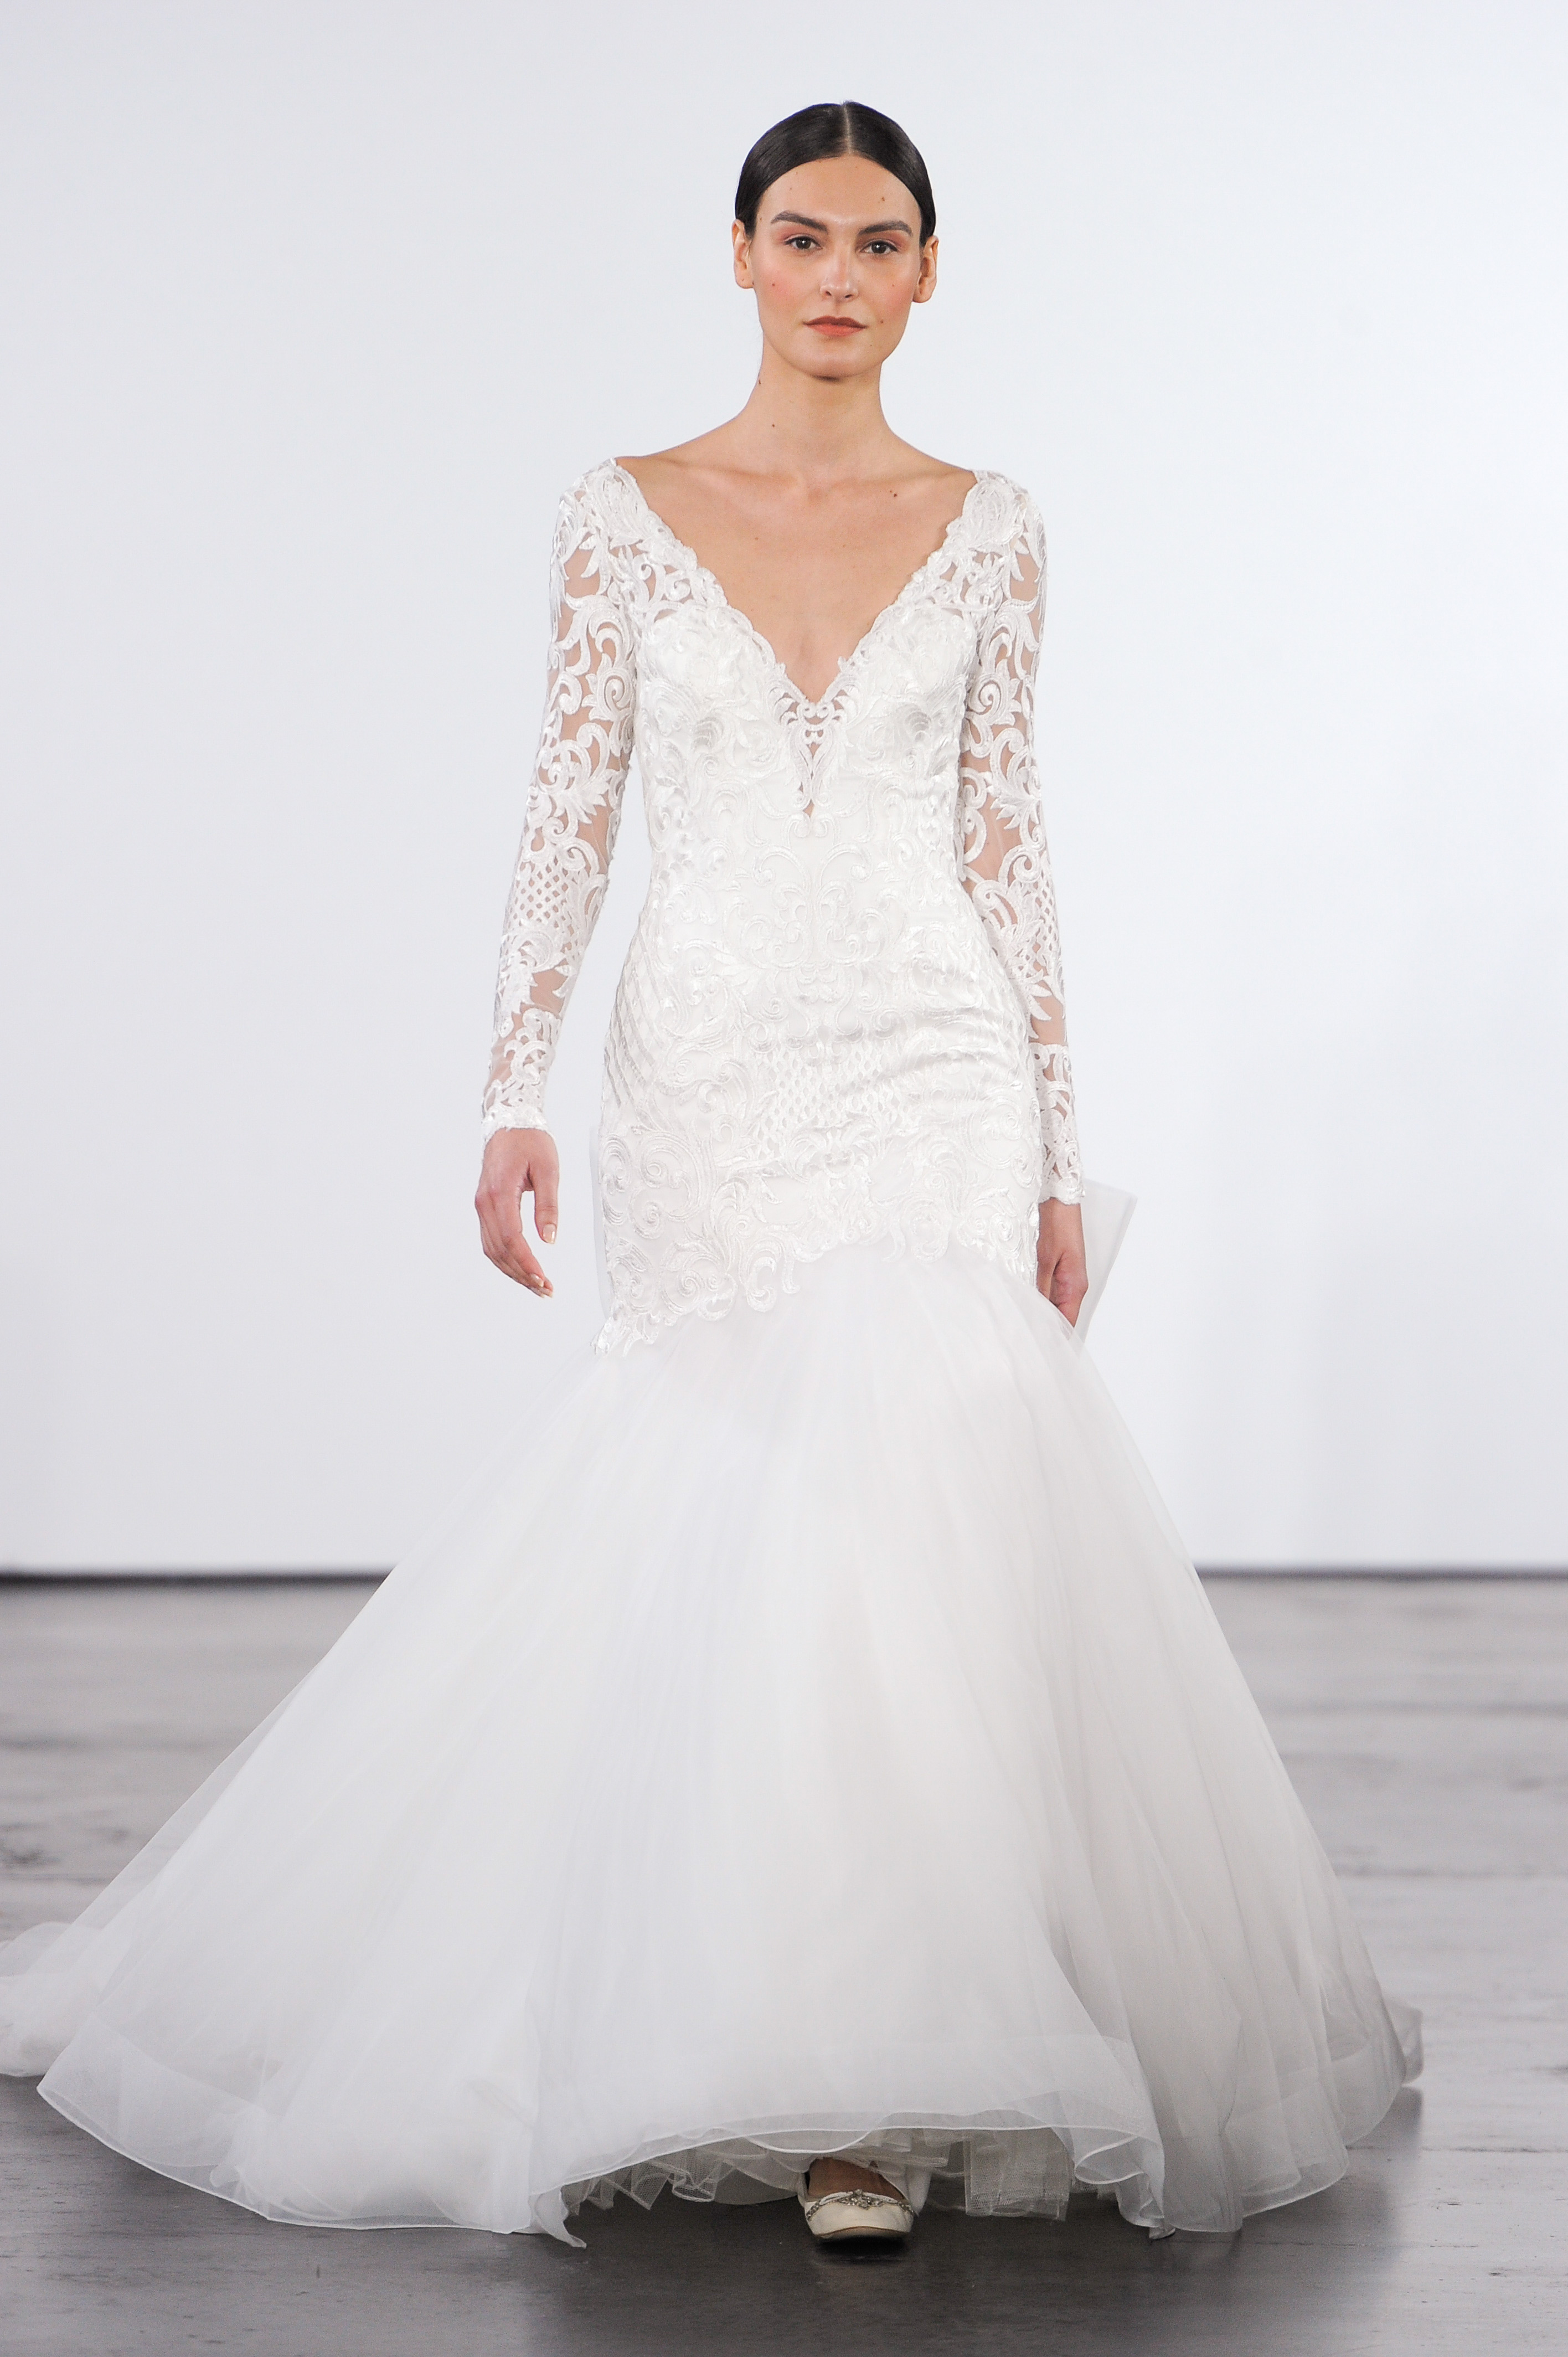 dennis basso wedding dress fall 2018 fit and flare v-neck